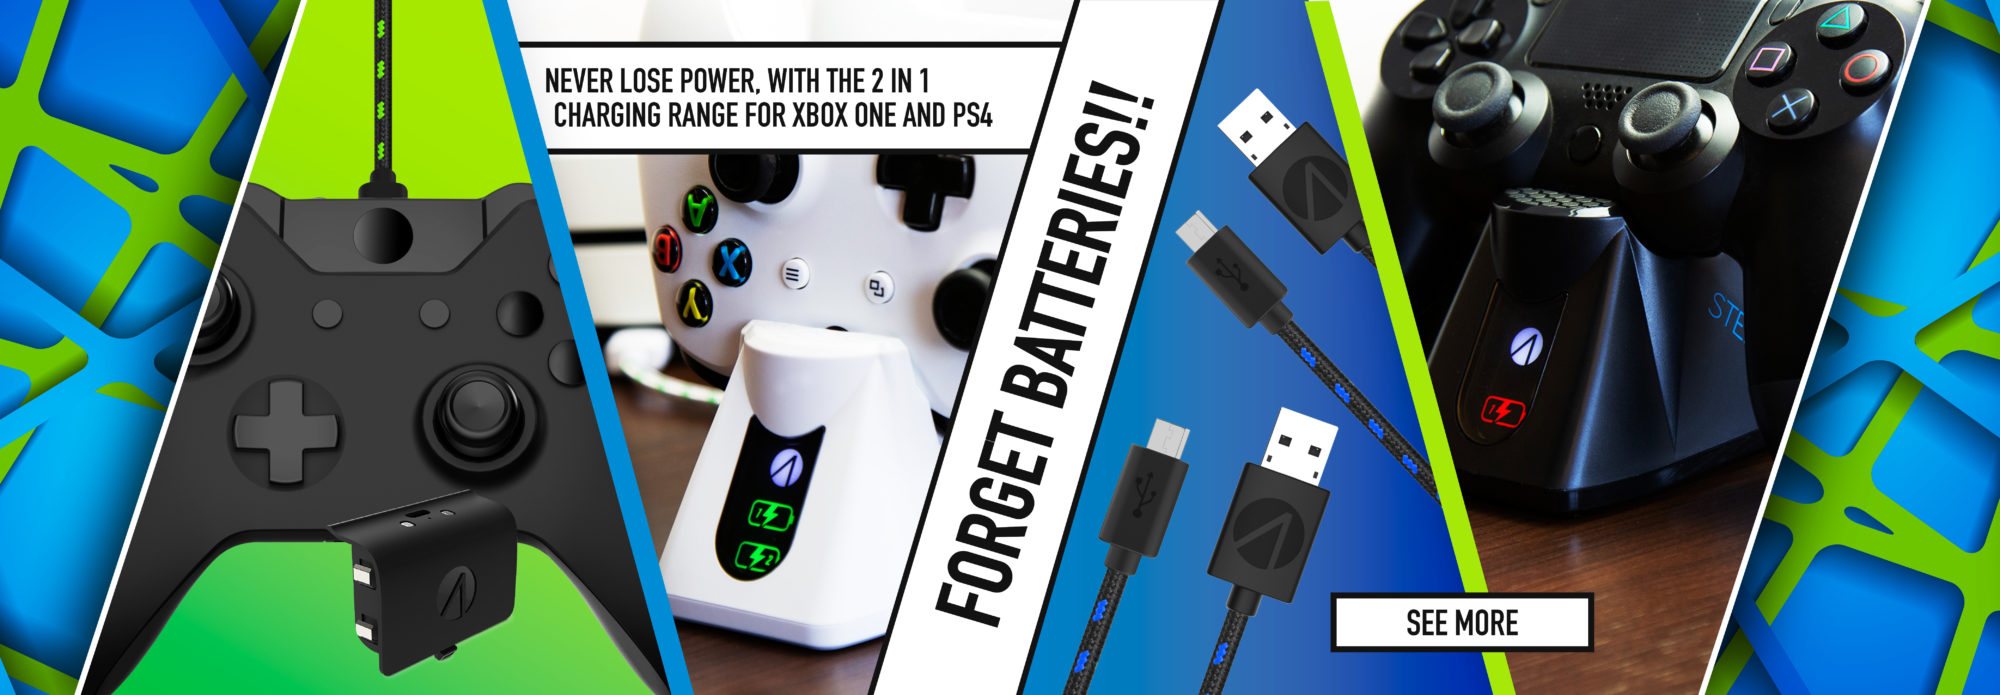 FORGET STOCKPILING BATTERIES! CHARGING SOLUTIONS FOR XBOX ONE AND PS4